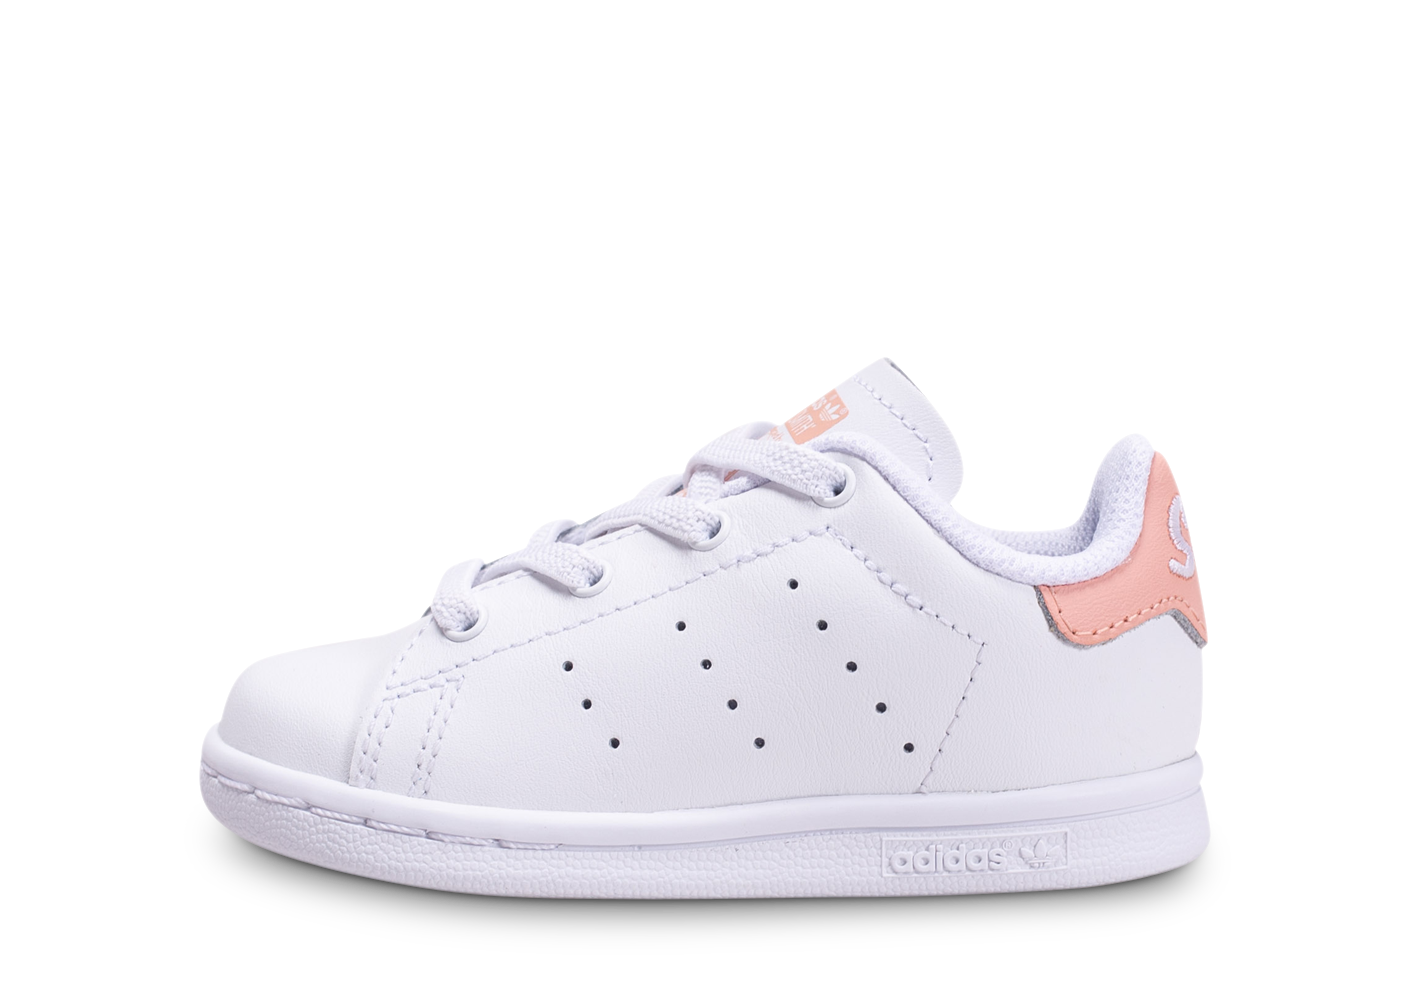 Tennis adidas stan smith blanche et rose bébé